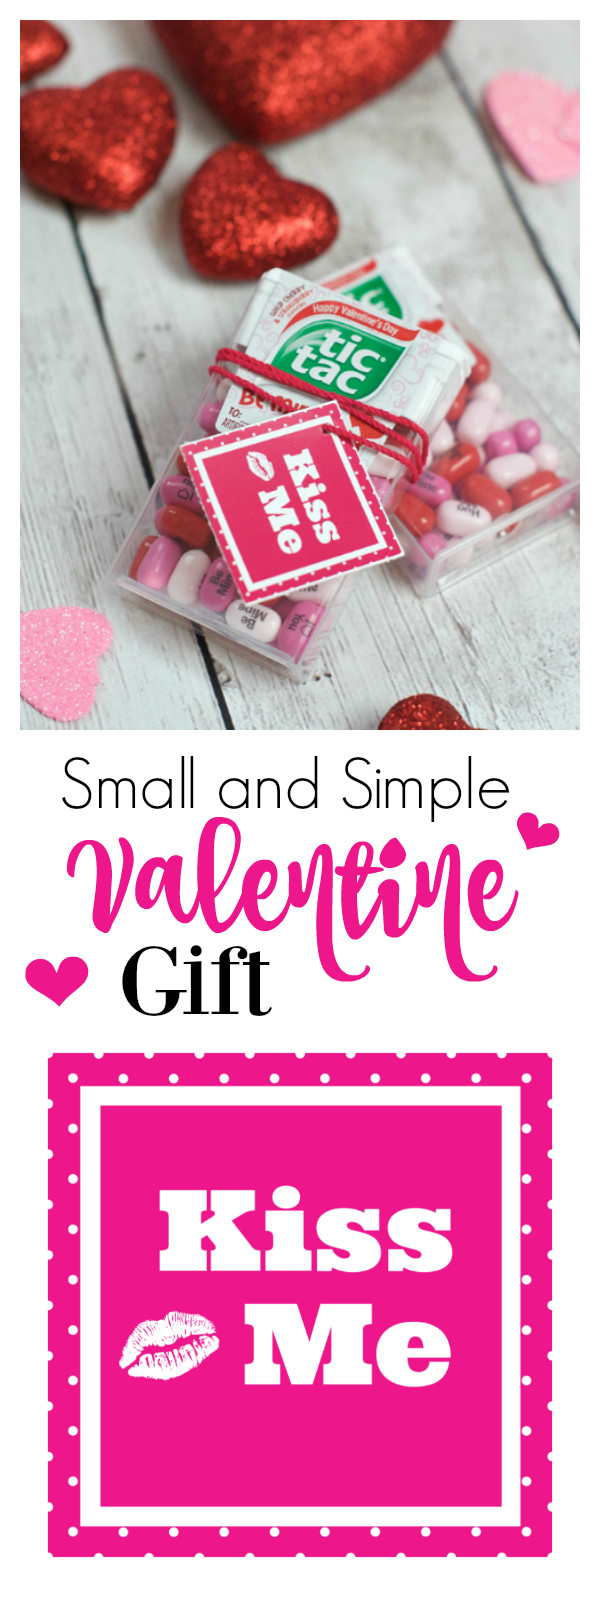 Best ideas about Small Valentine Gift Ideas . Save or Pin Simple & Small Valentine Gift Kiss Me Valentine – Fun Squared Now.